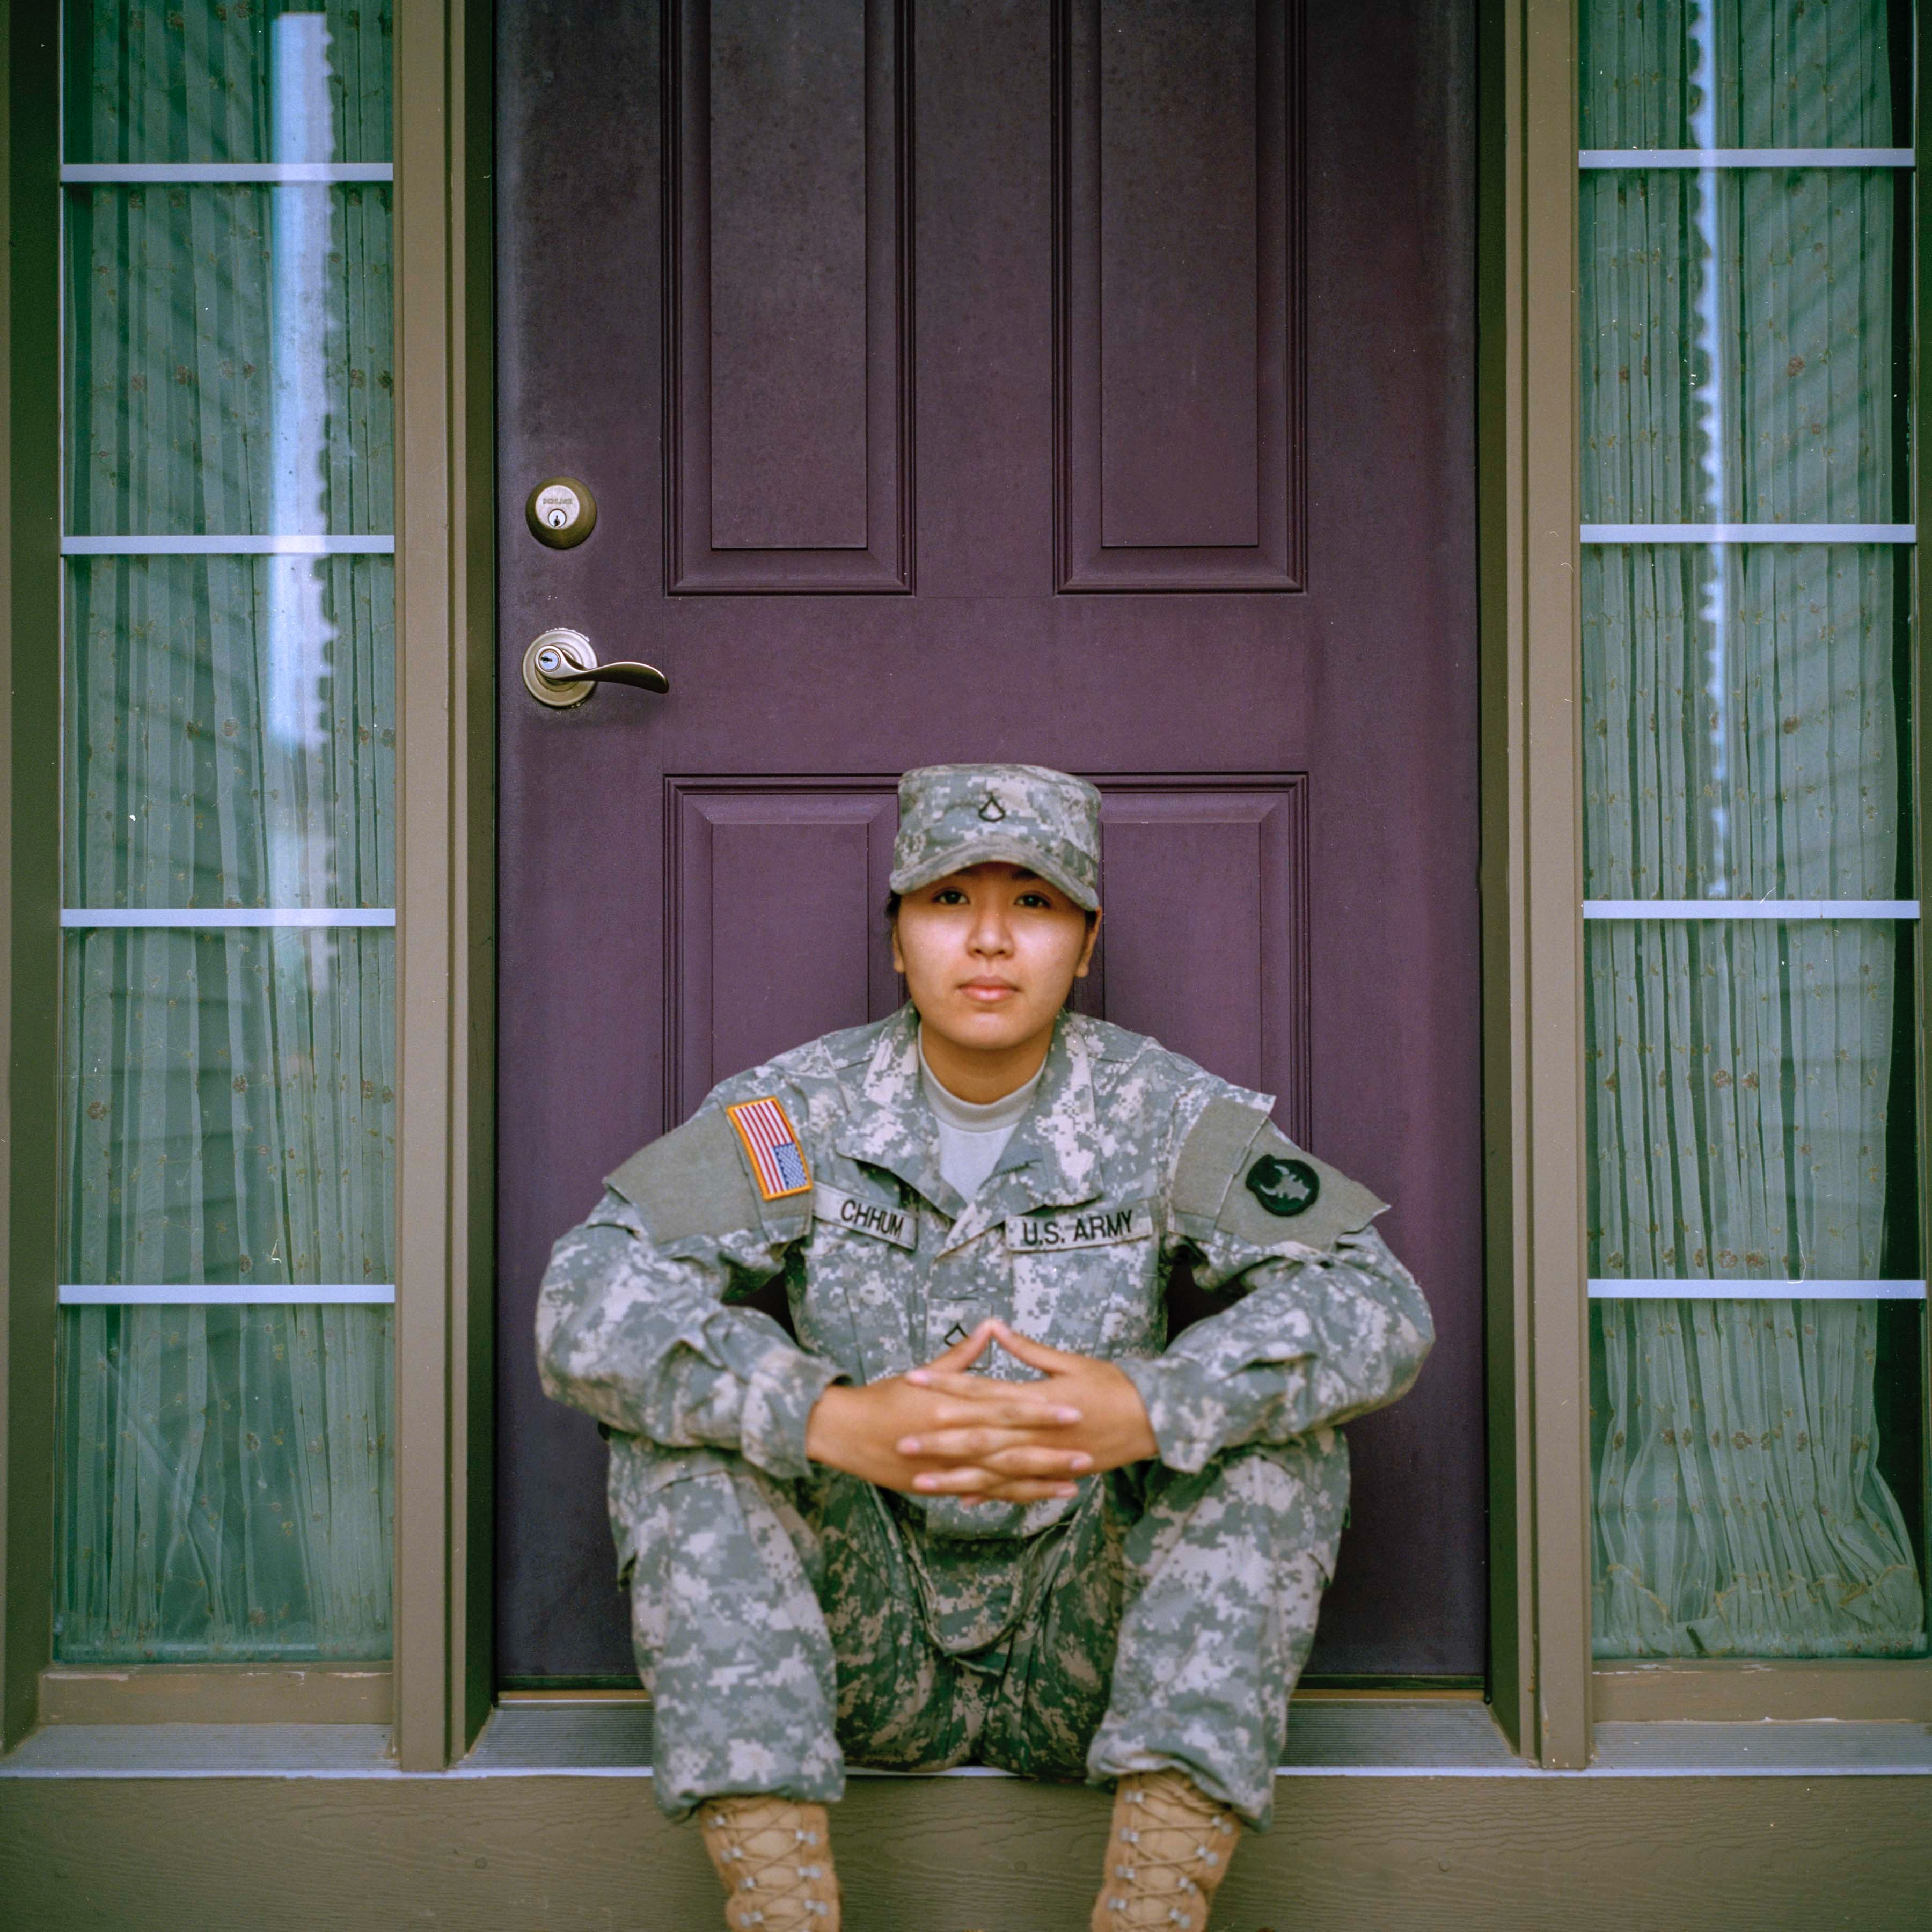 A U.S. Soldier sits in front of a door